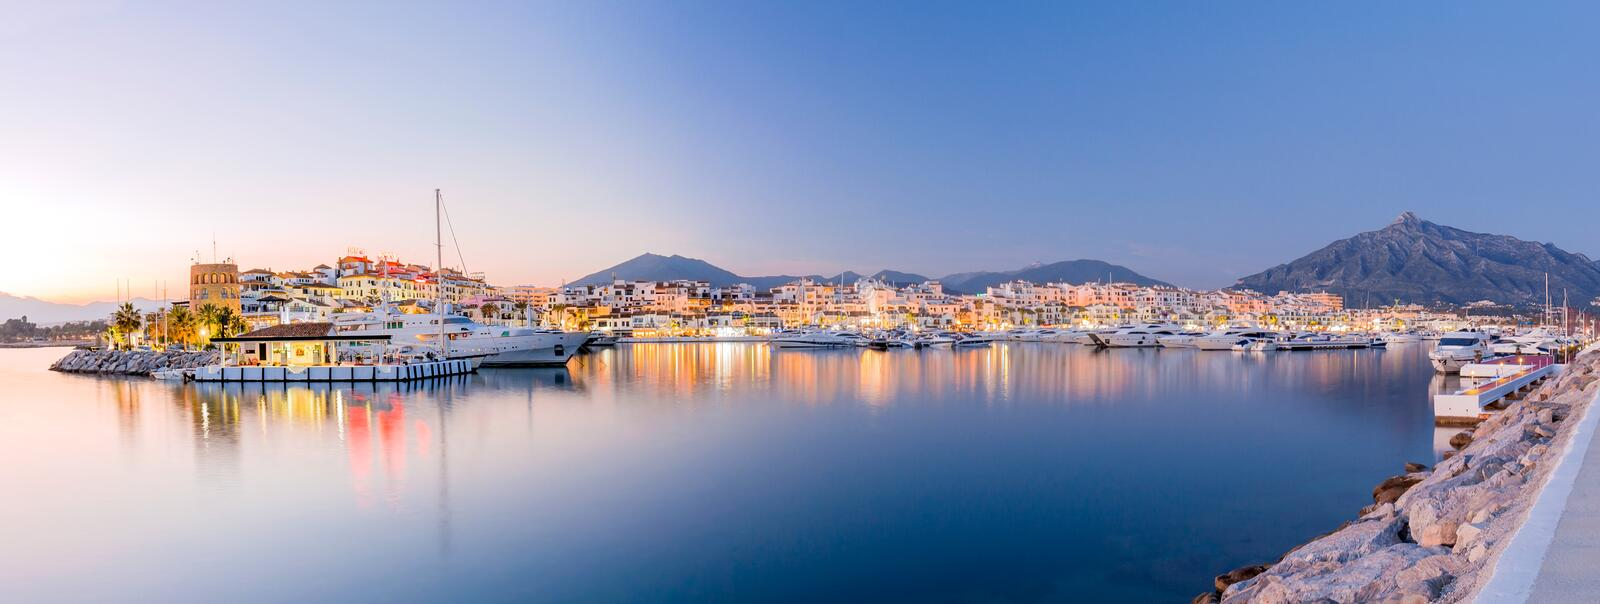 Puerto Banus landscape stock photography